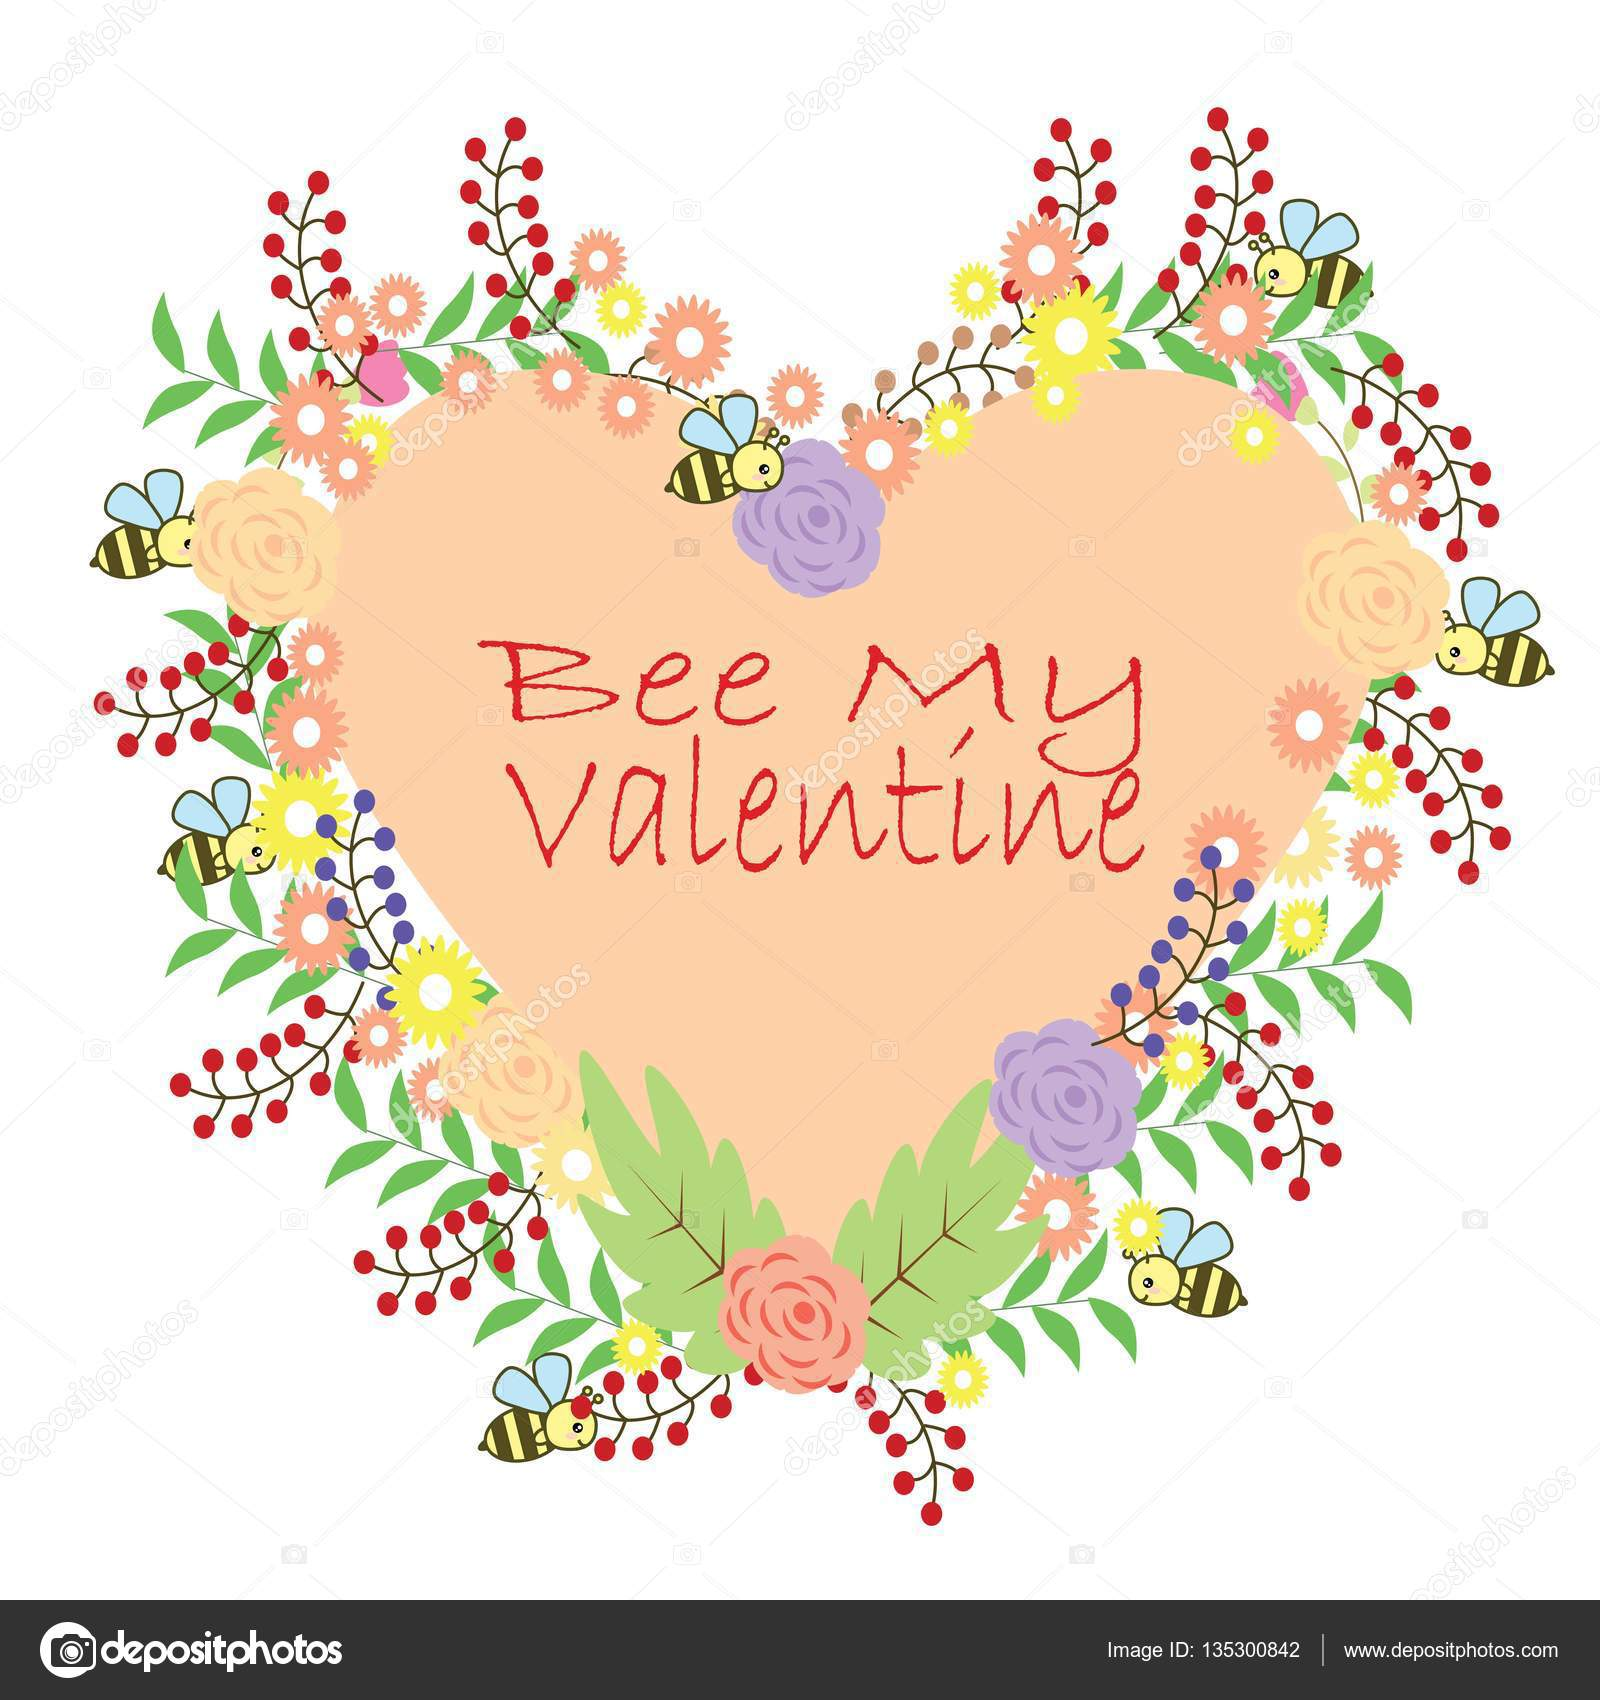 Bee My Valentine Vector widewi87 135300842 – Bee My Valentine Card